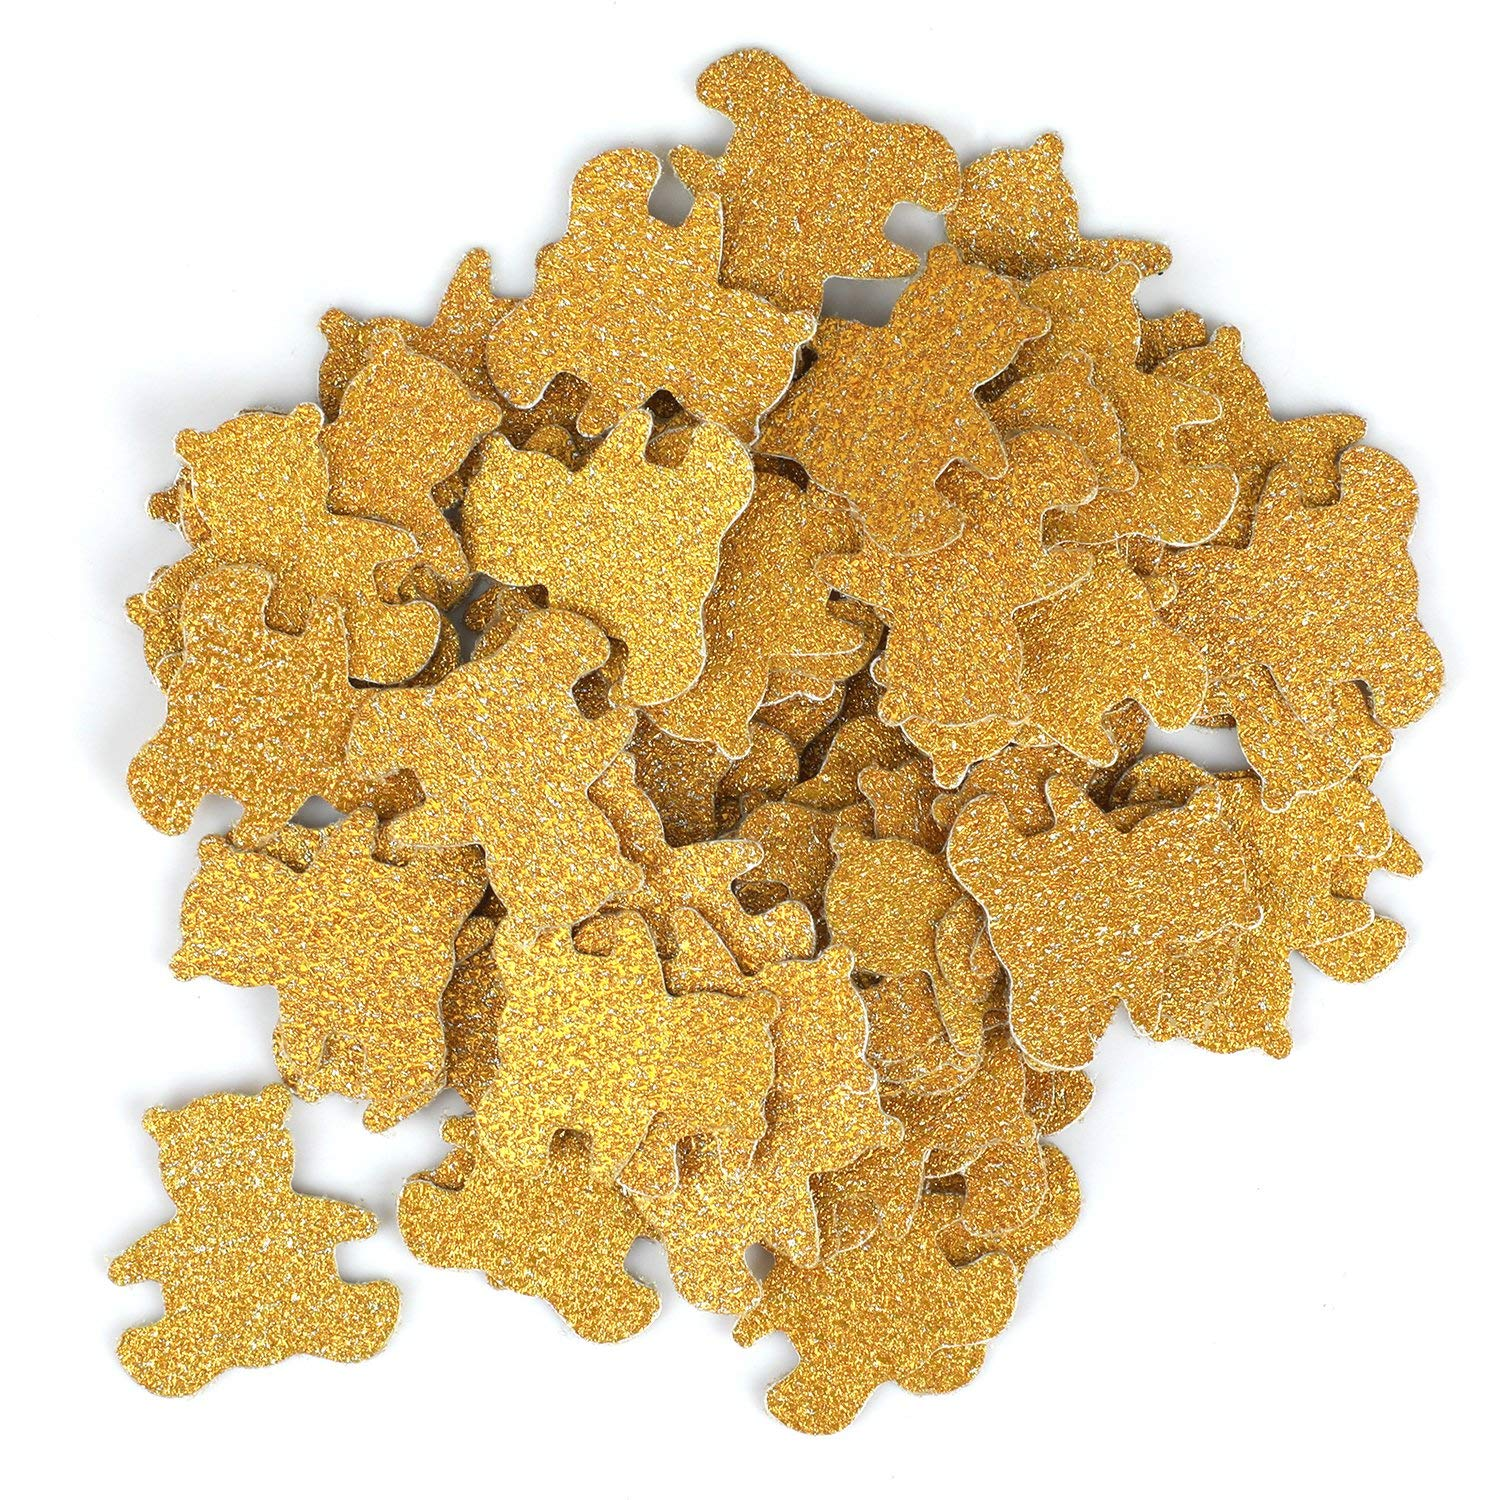 Double- Side Glitter Gold Bear Confetti Wedding Bithday Parties Confetti 200pcs Baby Shower Decorations Table Scatters Setting